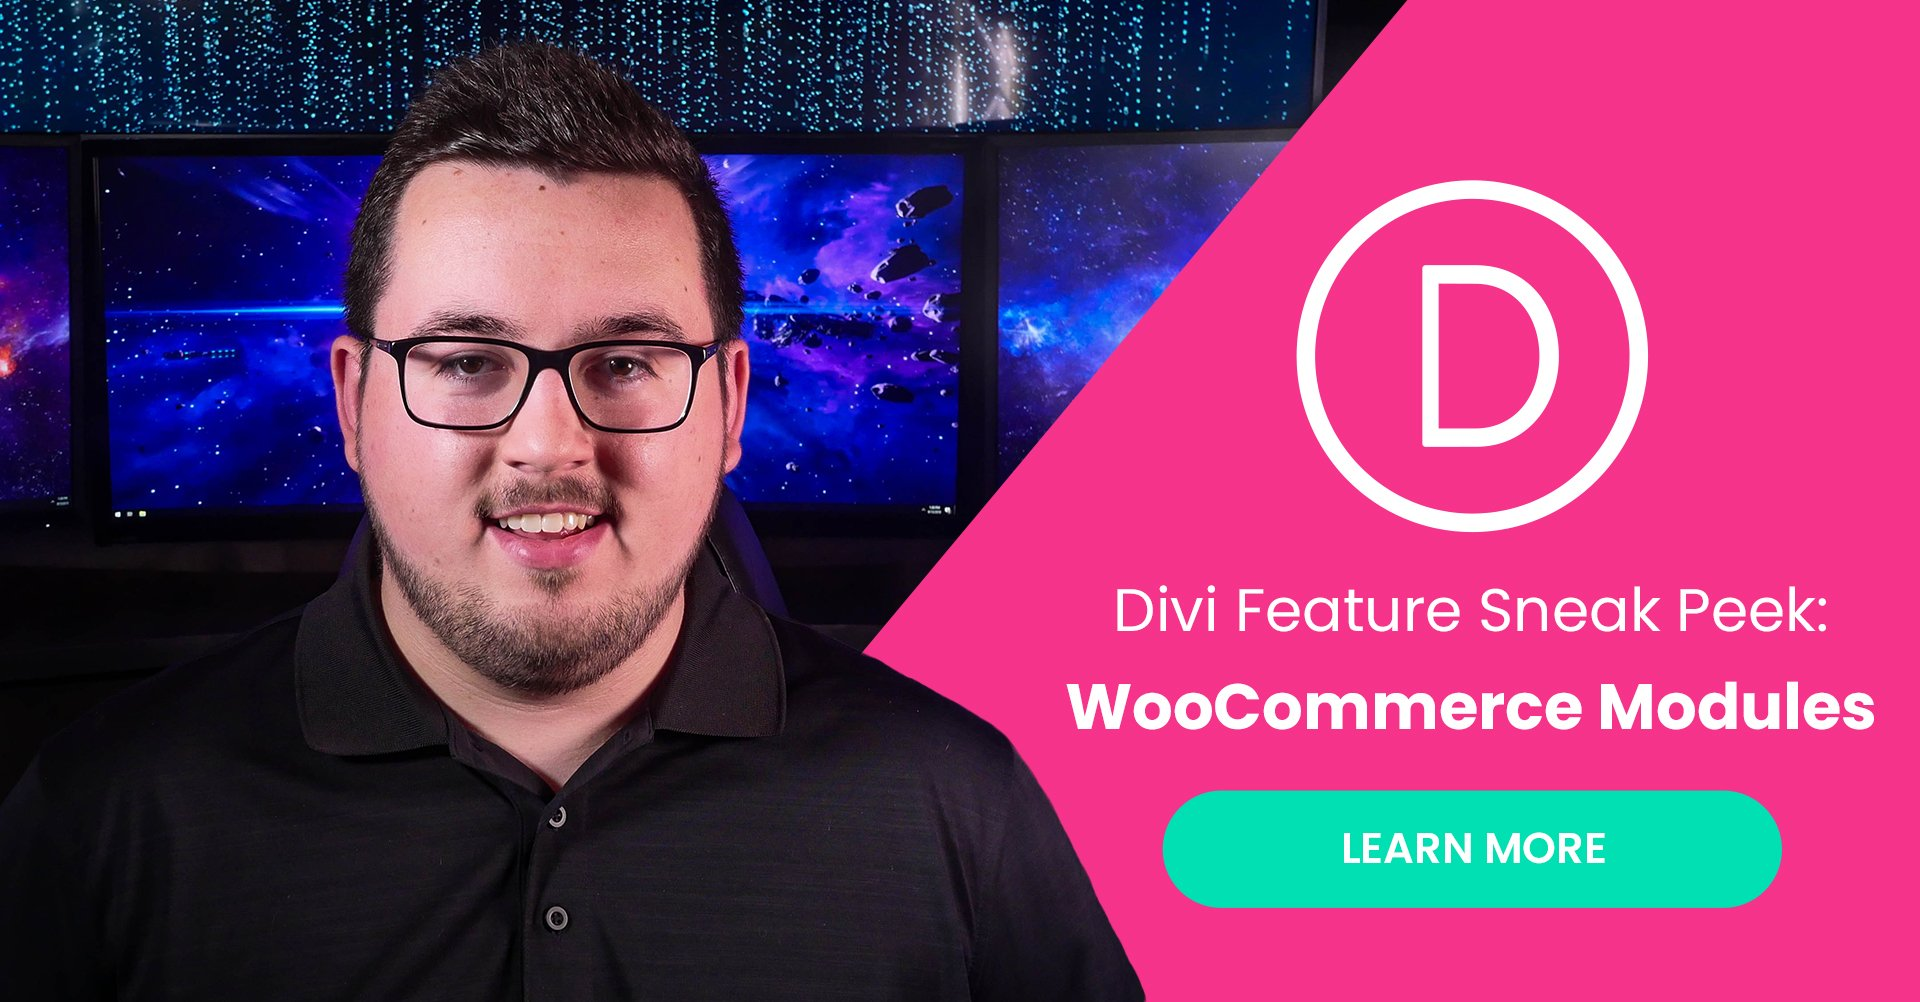 Divi Feature Sneak Peek: WooCommerce Modules